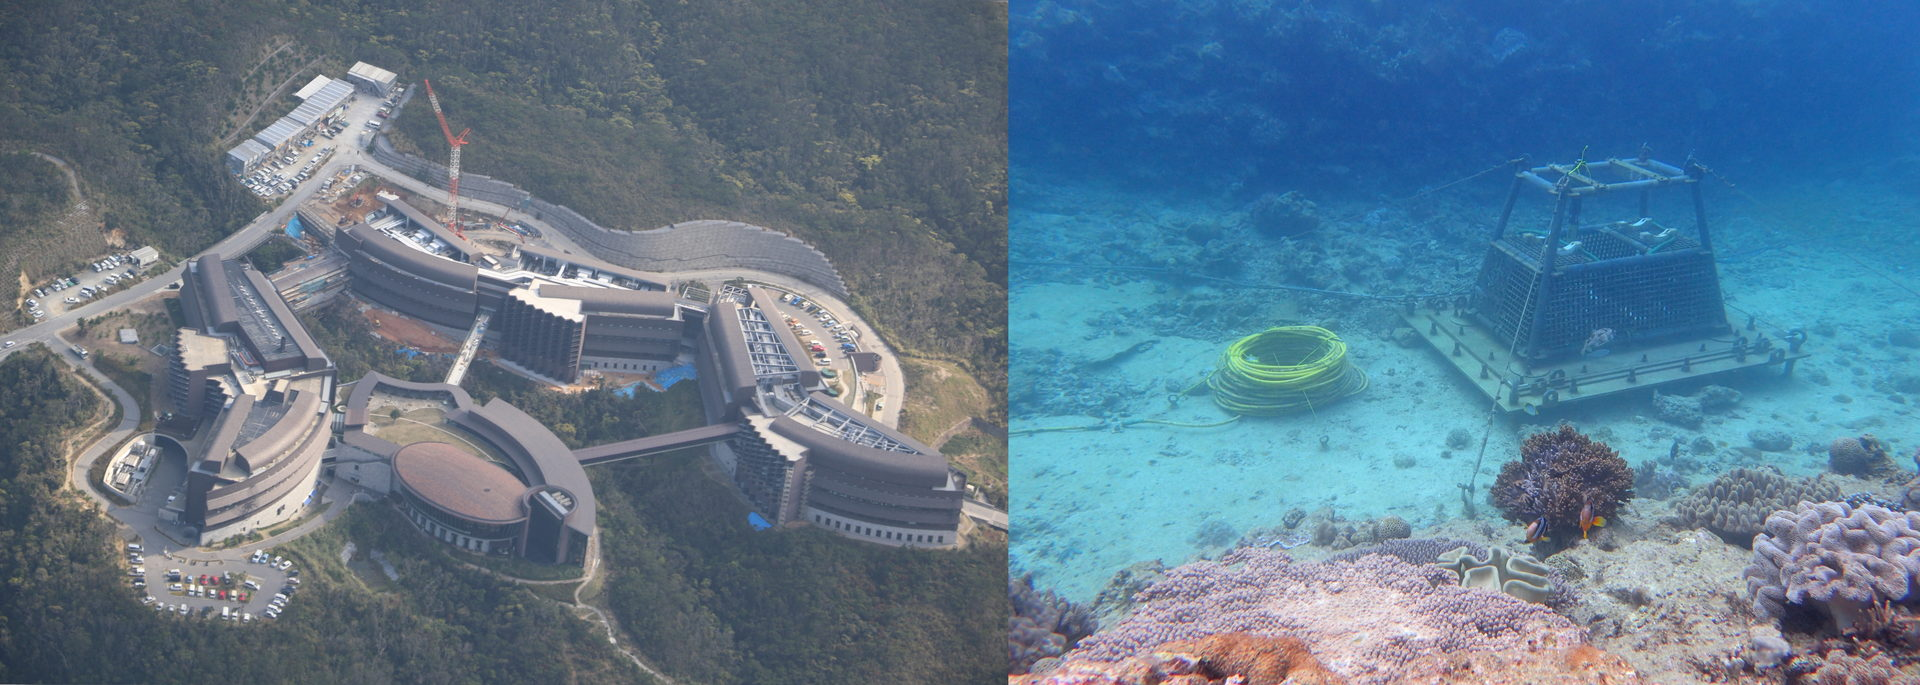 Two images side by side. on the left is a photograph of four connected buildings from above. The buildings have modern architecture and are all centred around a smaller building which the other three buildings curve away from. The image on the right is an underwater photograph of a cube frame instrument with a role of yellow wires which sits on the sand, surrounded by coral reef.